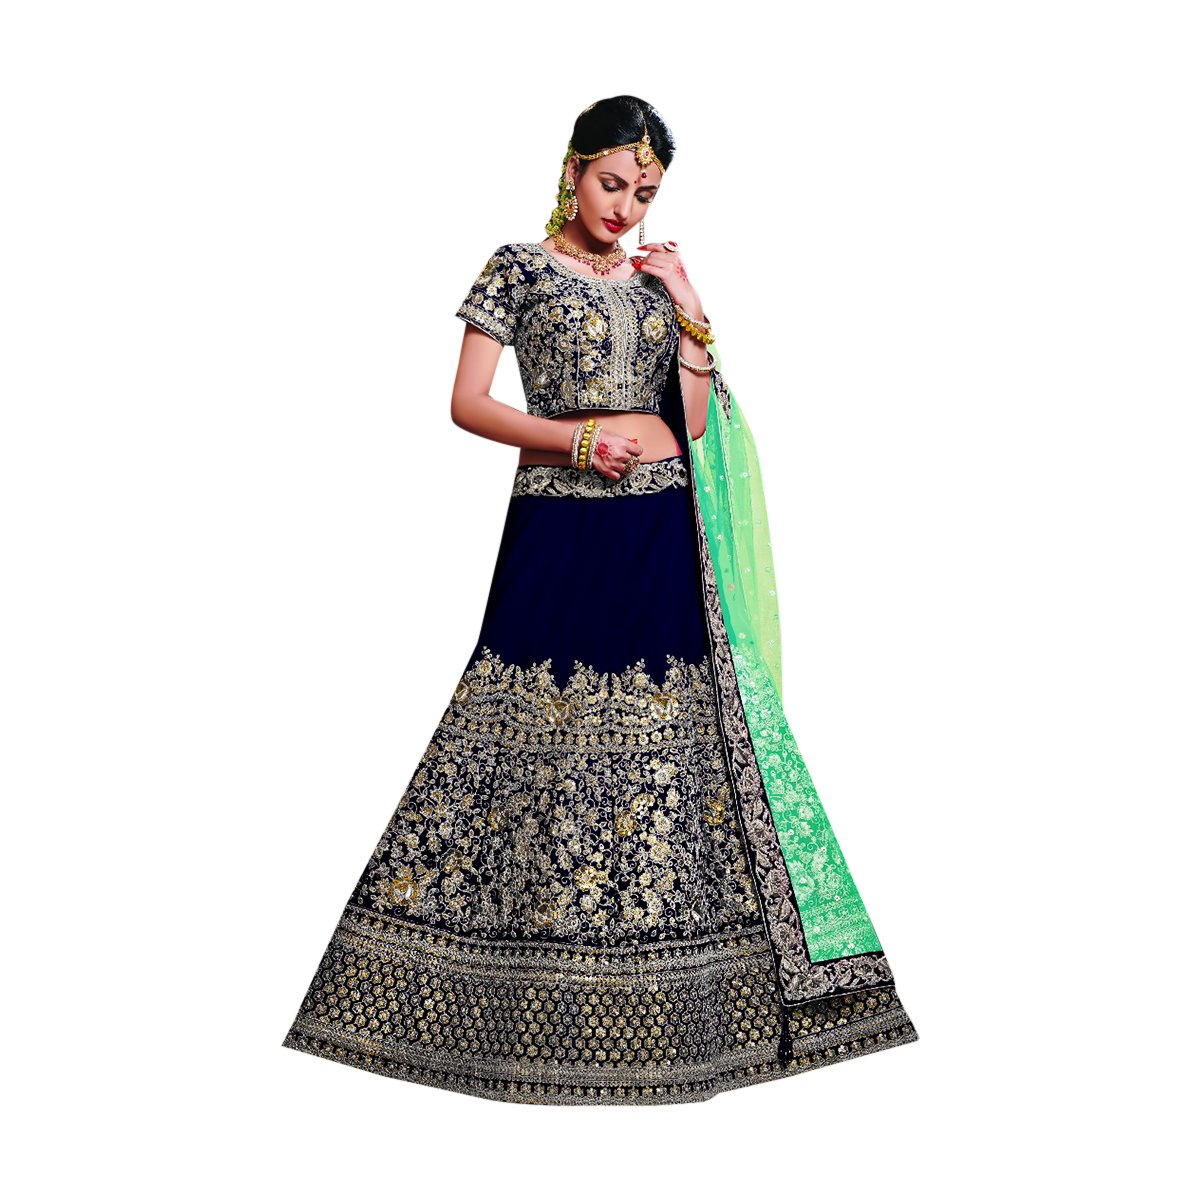 Designer Velvet Lehenga Choli Dupatta Dress Bollywood Indian Ethnic Wedding Women Muslim Bridal Embroidery Zari Work 645 (Blue) by ETHNIC EMPORIUM (Image #1)